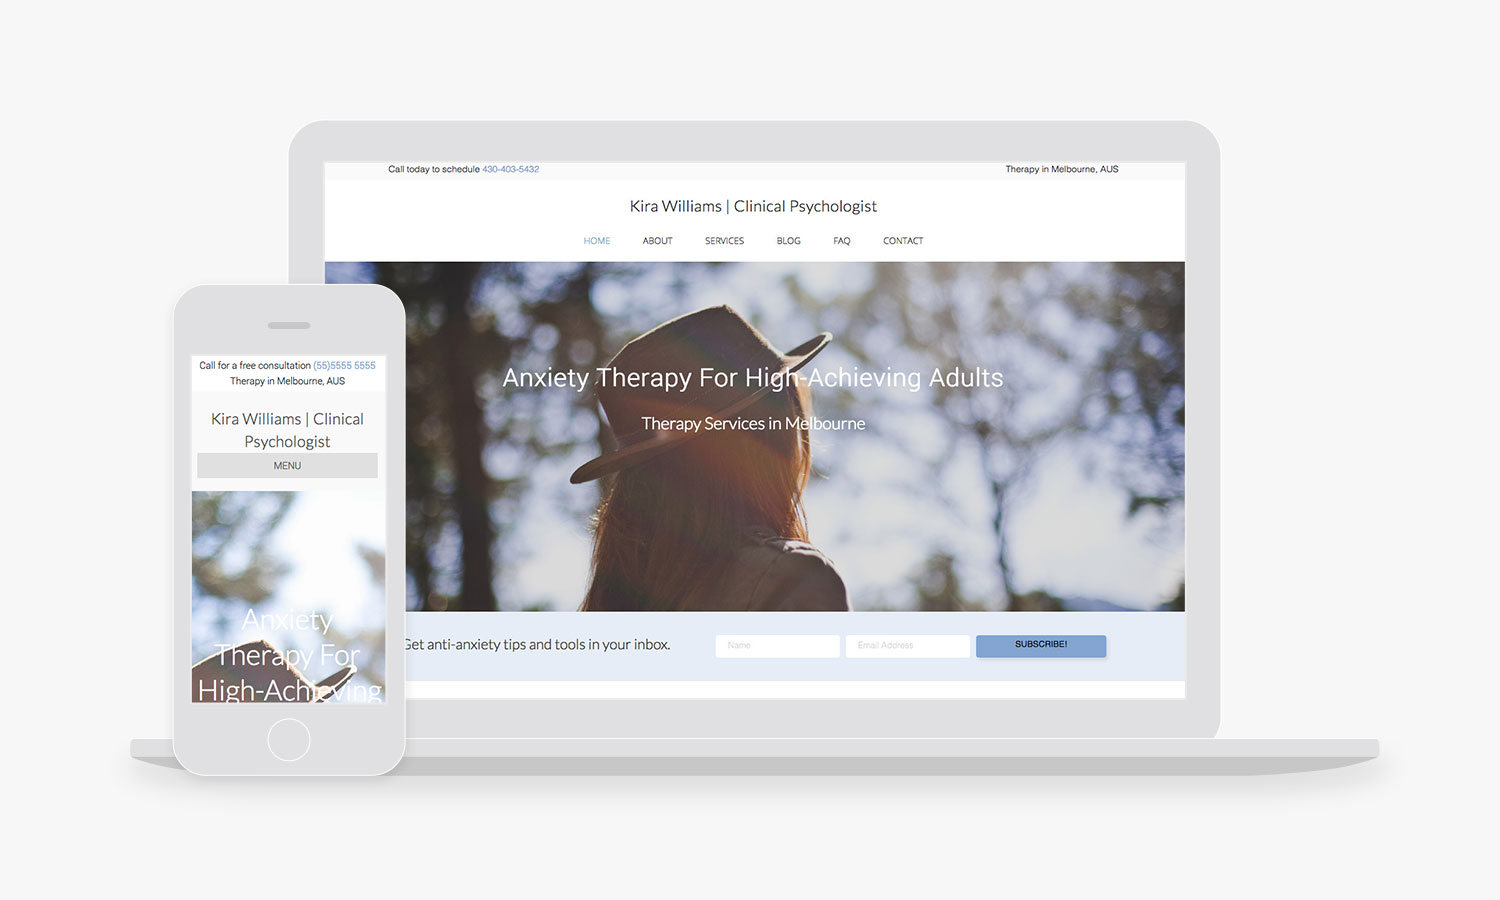 Psychotherapy Website Design Templates and Themes - Empathysites